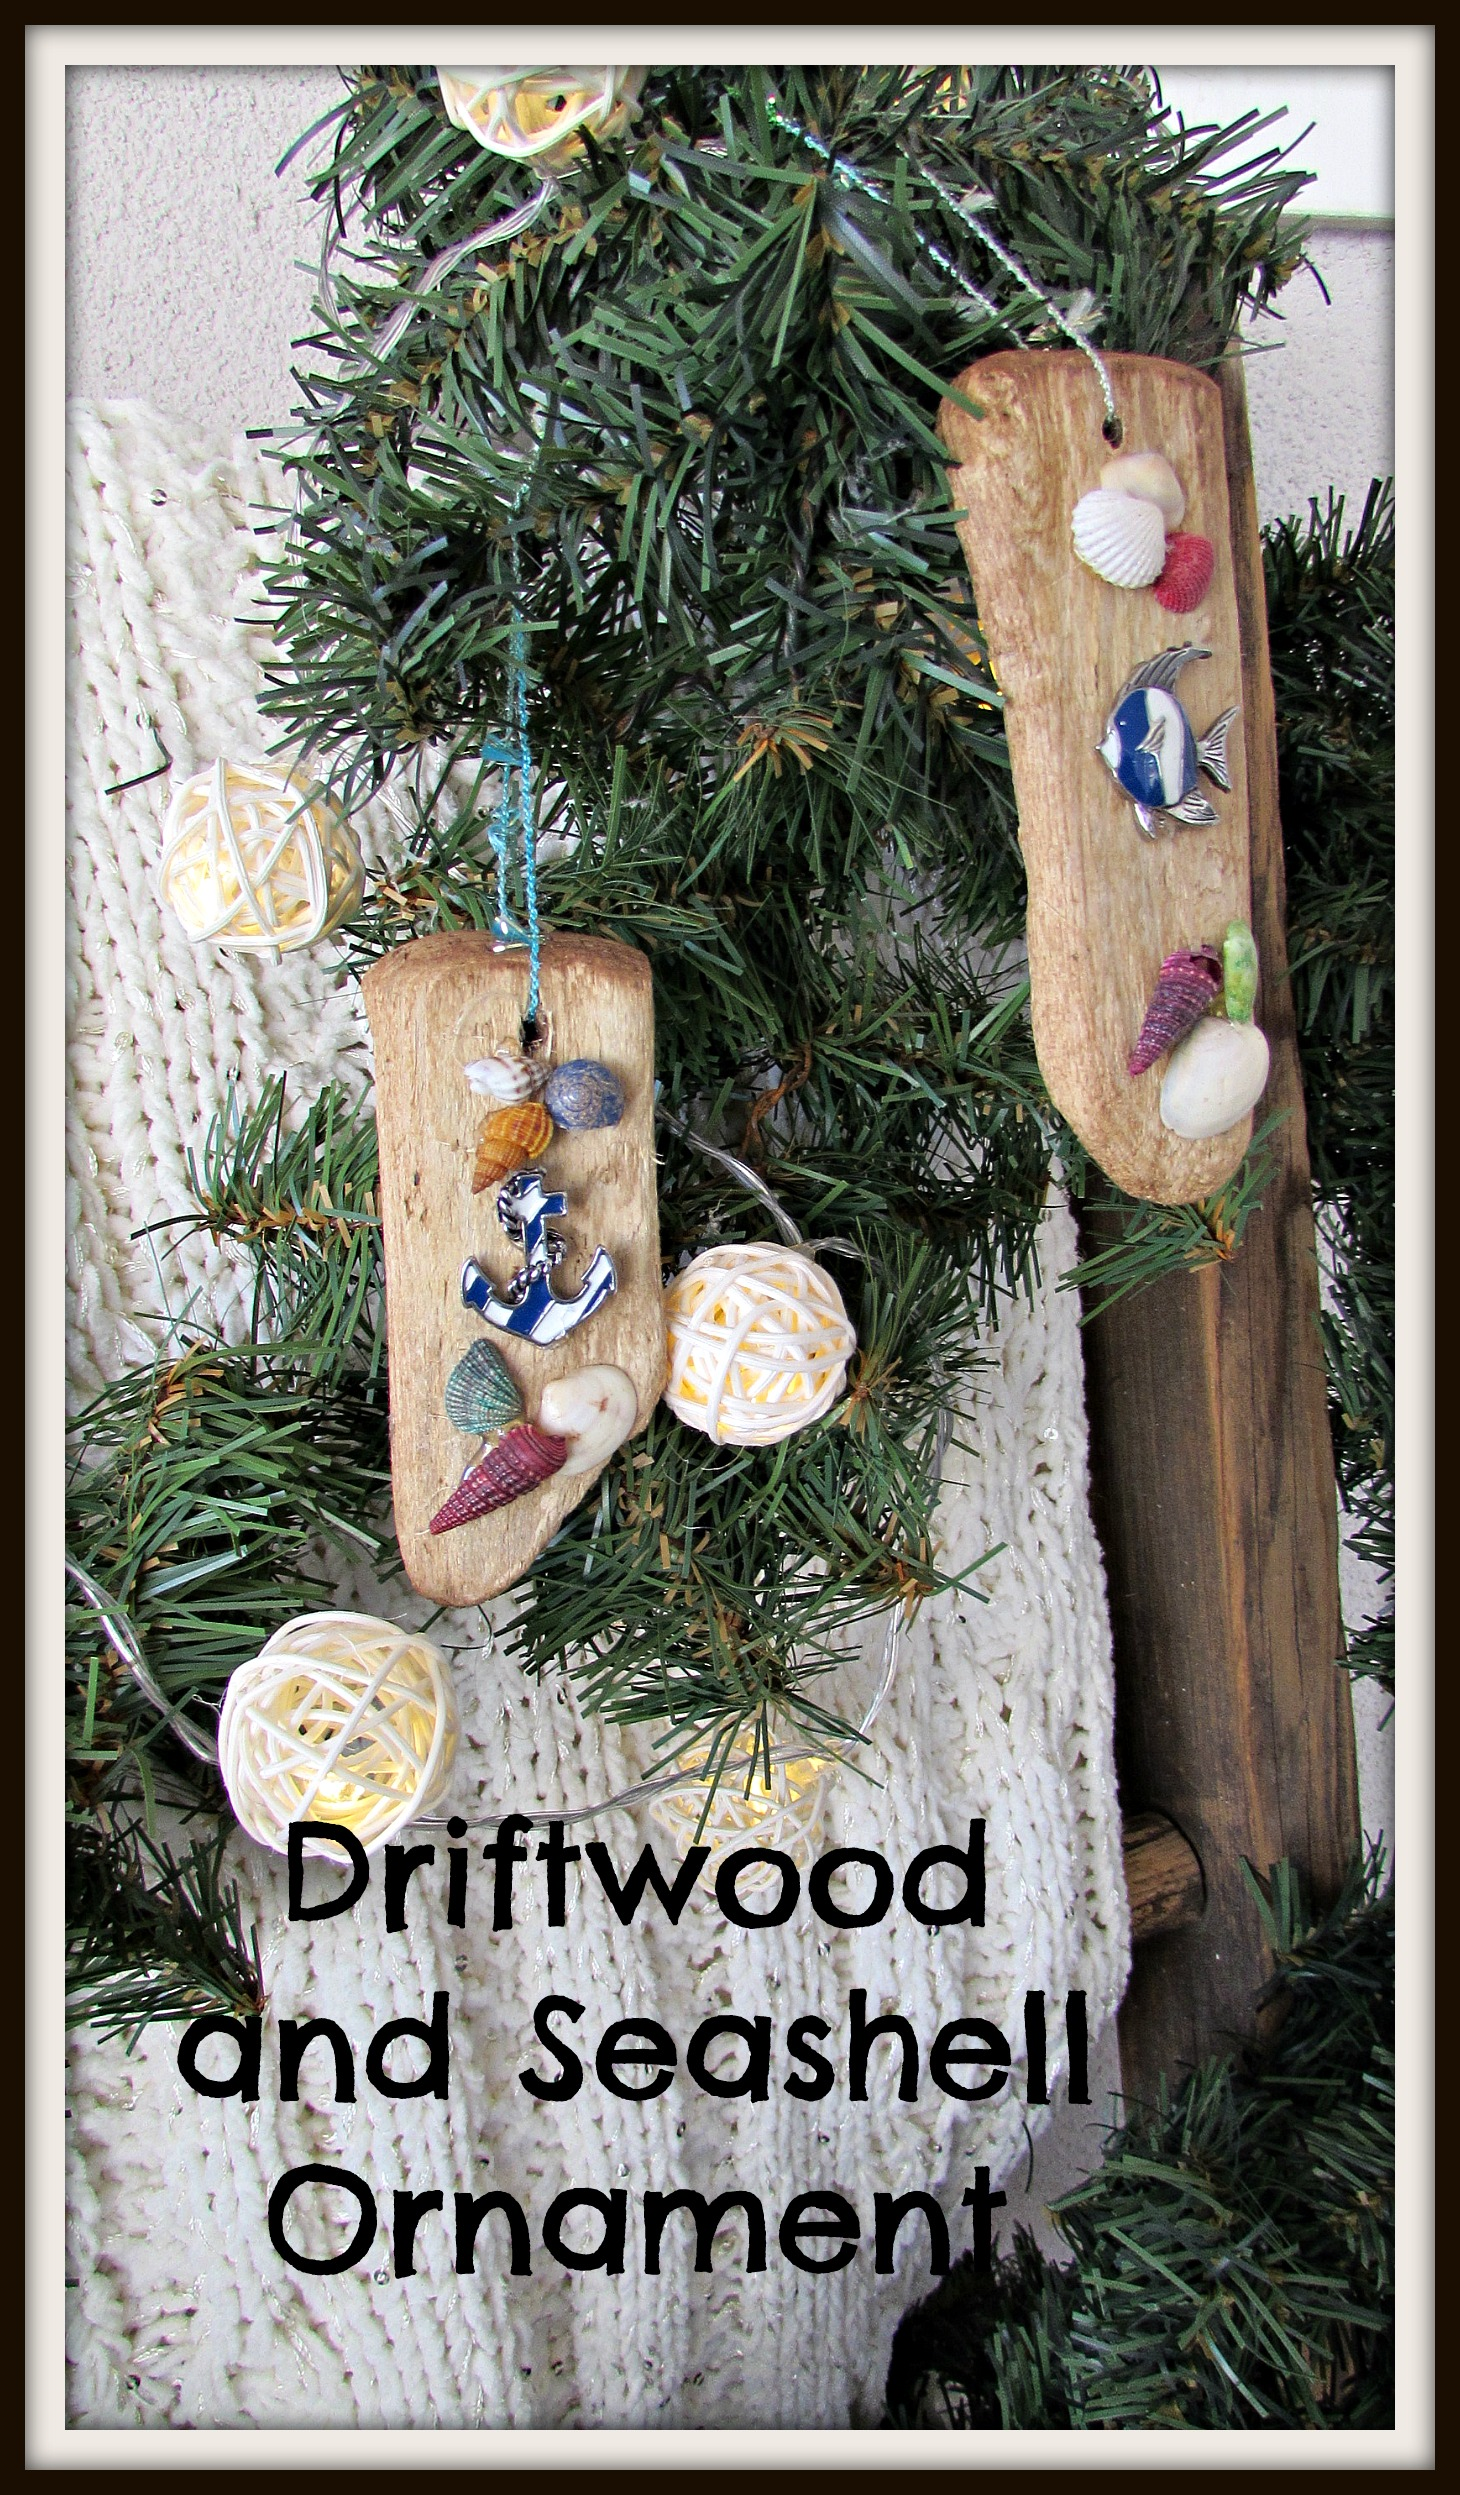 driftwood and seashell ornament title